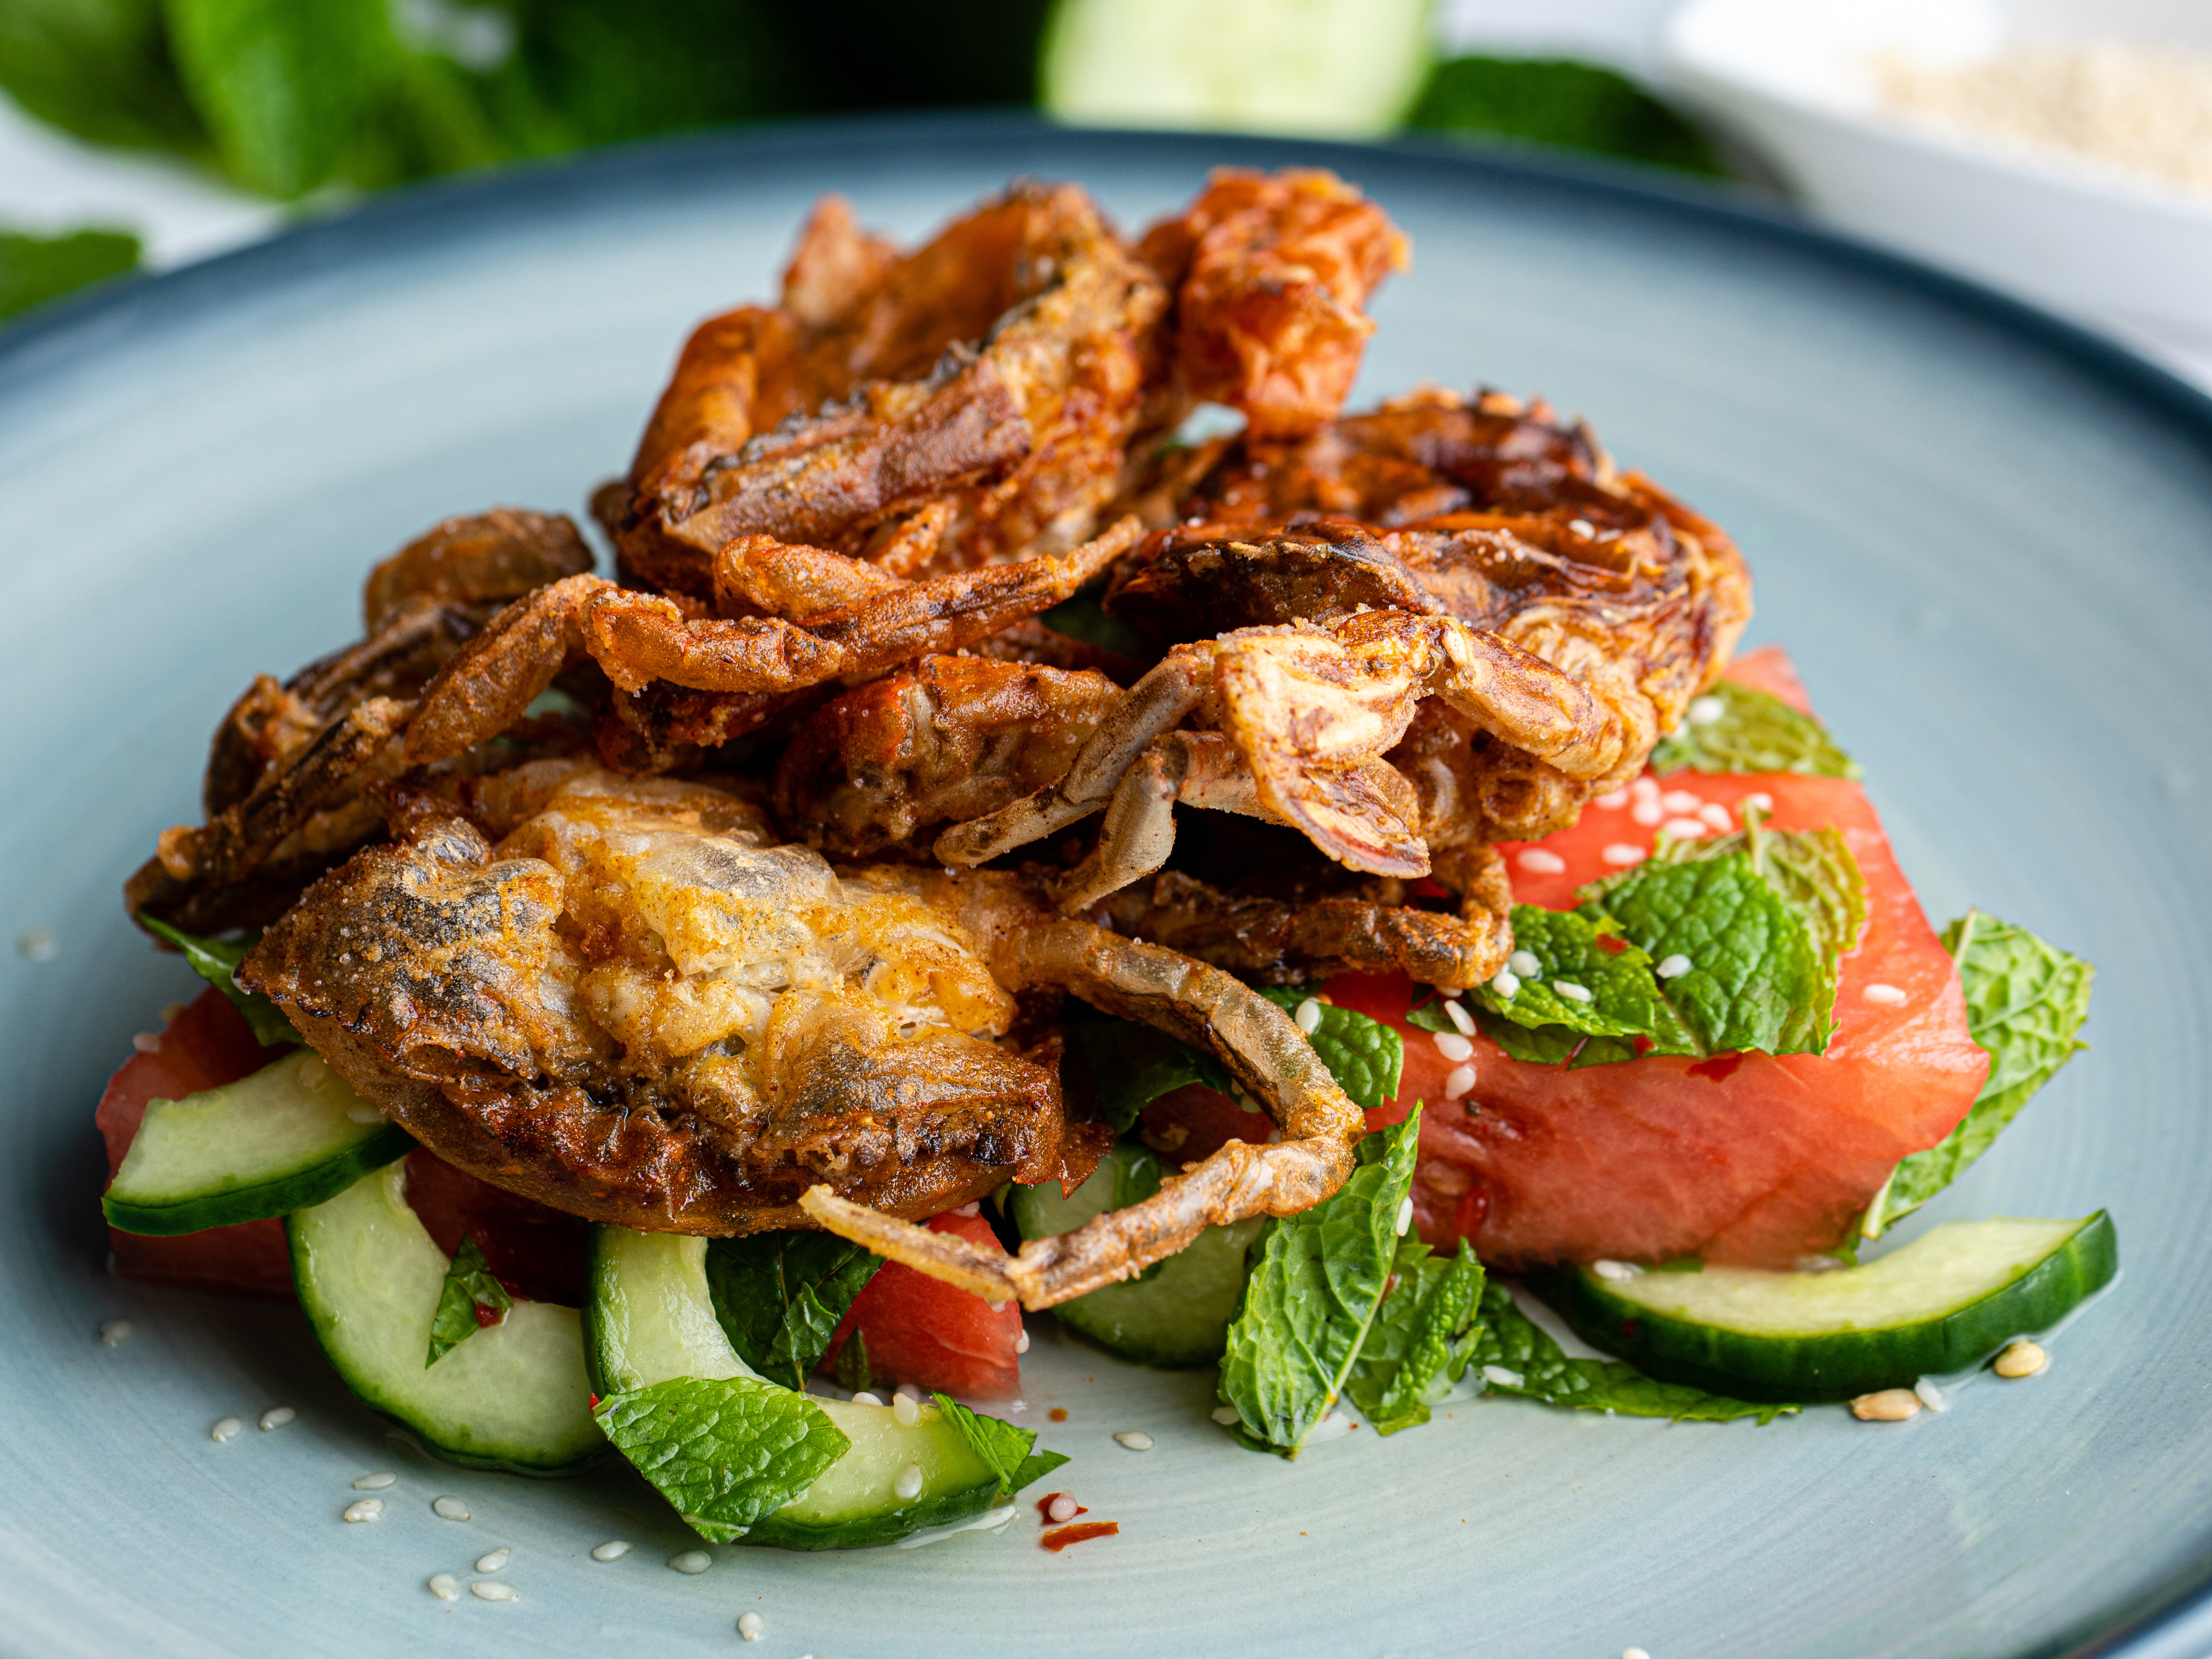 Soft Shell Crab with Pickled Watermelon and Cucumber